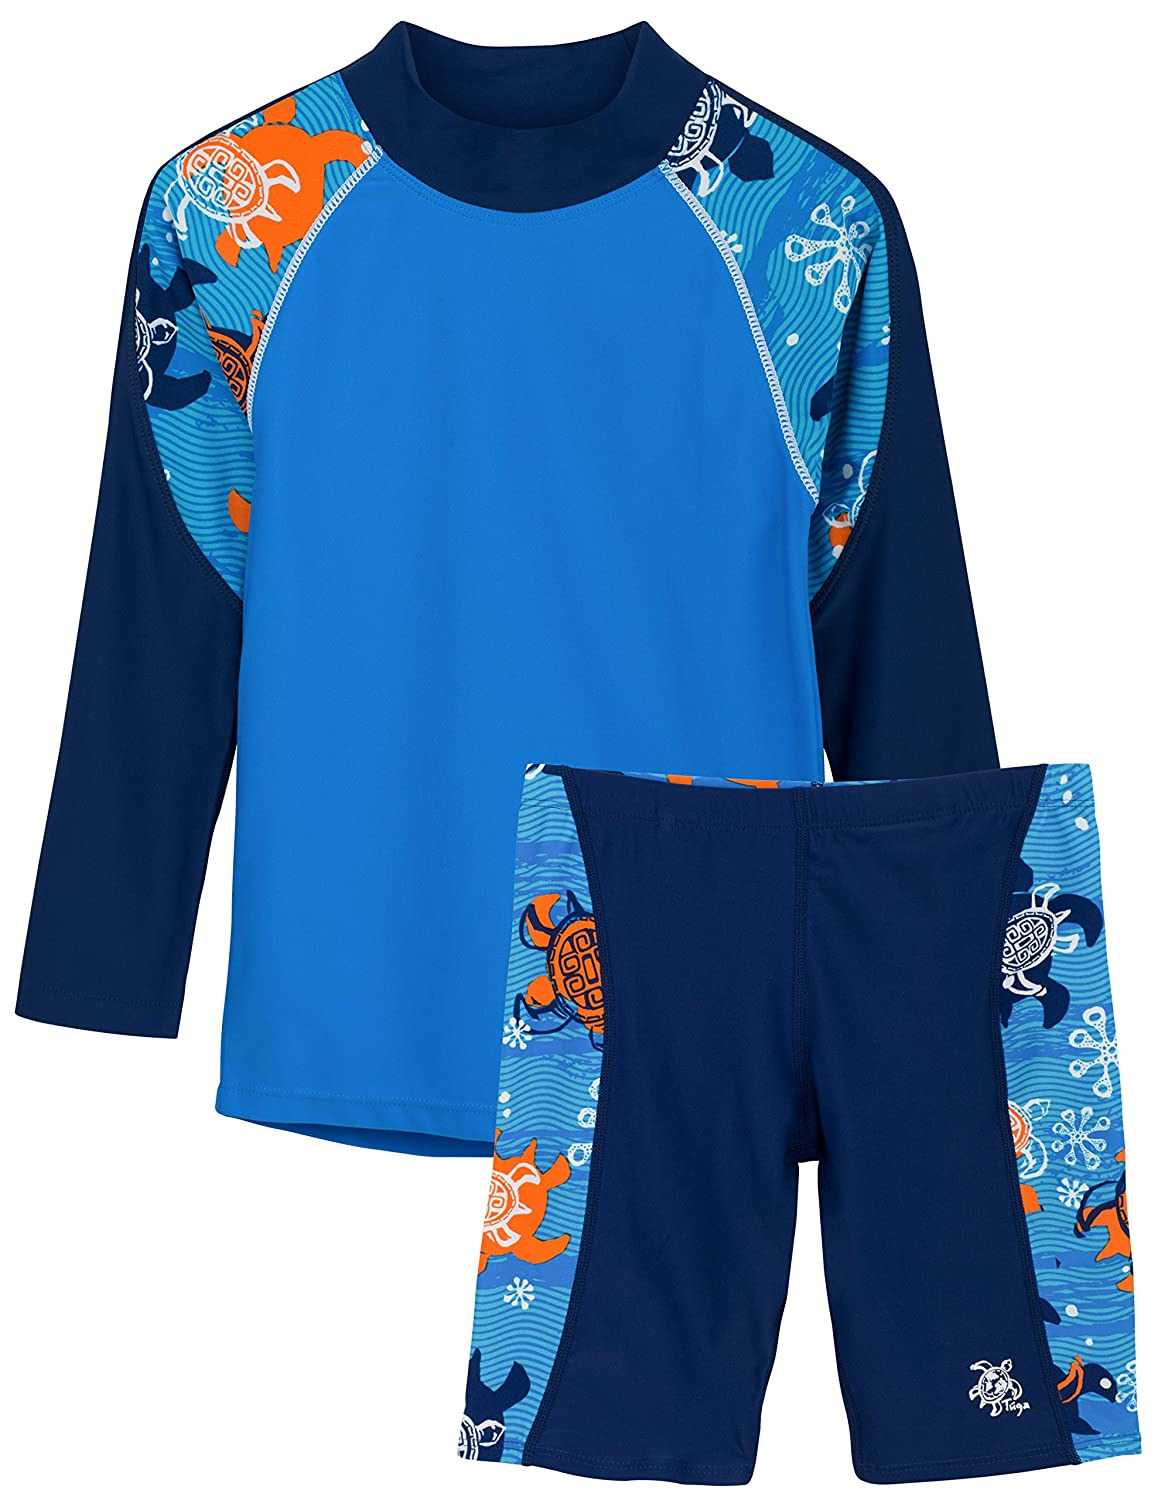 UPF 50 Protection Tuga Boys Two Piece Long Sleeve Swimsuit Set 2-14 Years